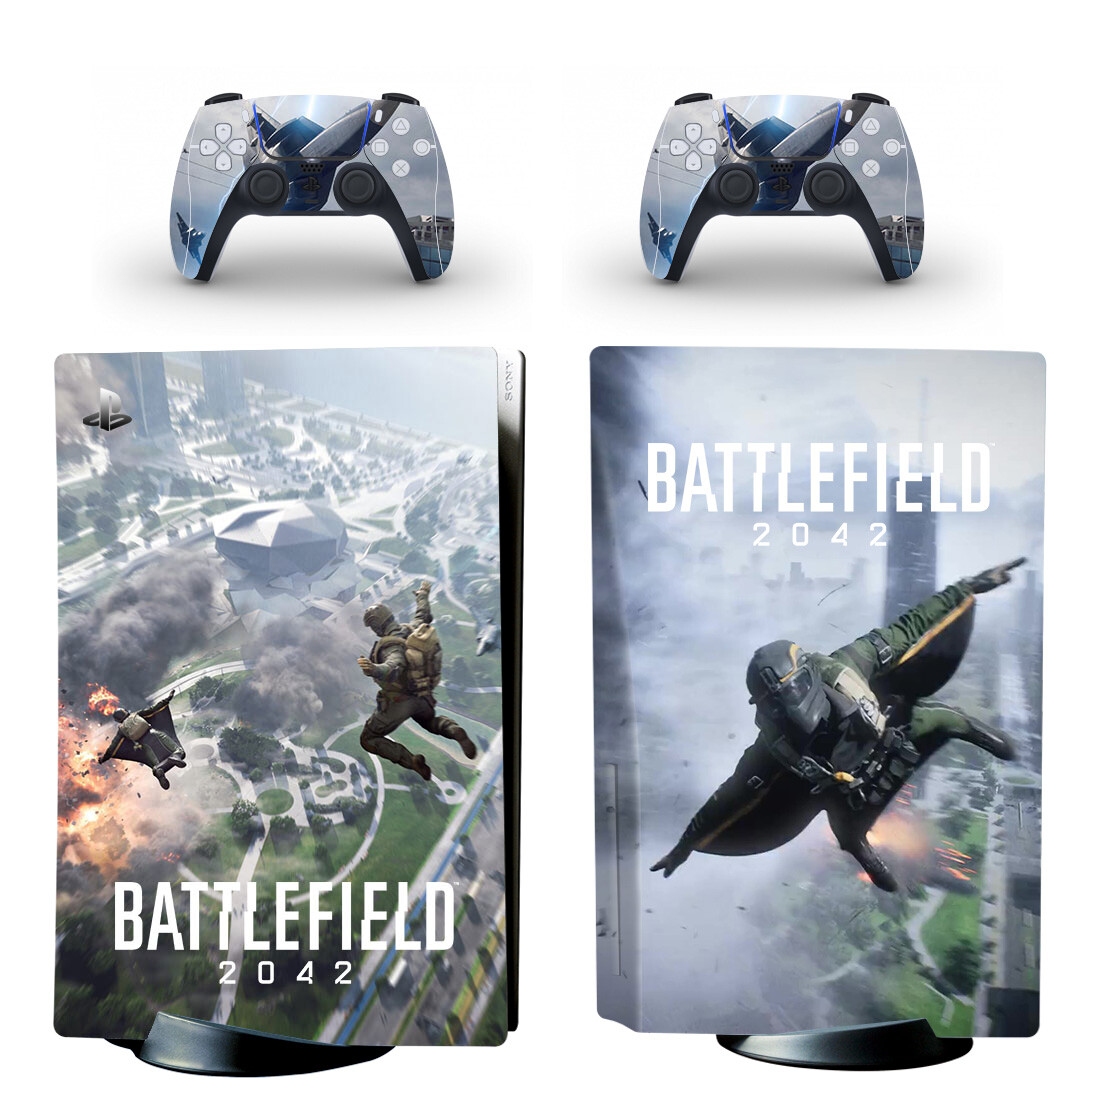 Battlefield 2042 Skin Sticker For PS5 Skin And Controllers